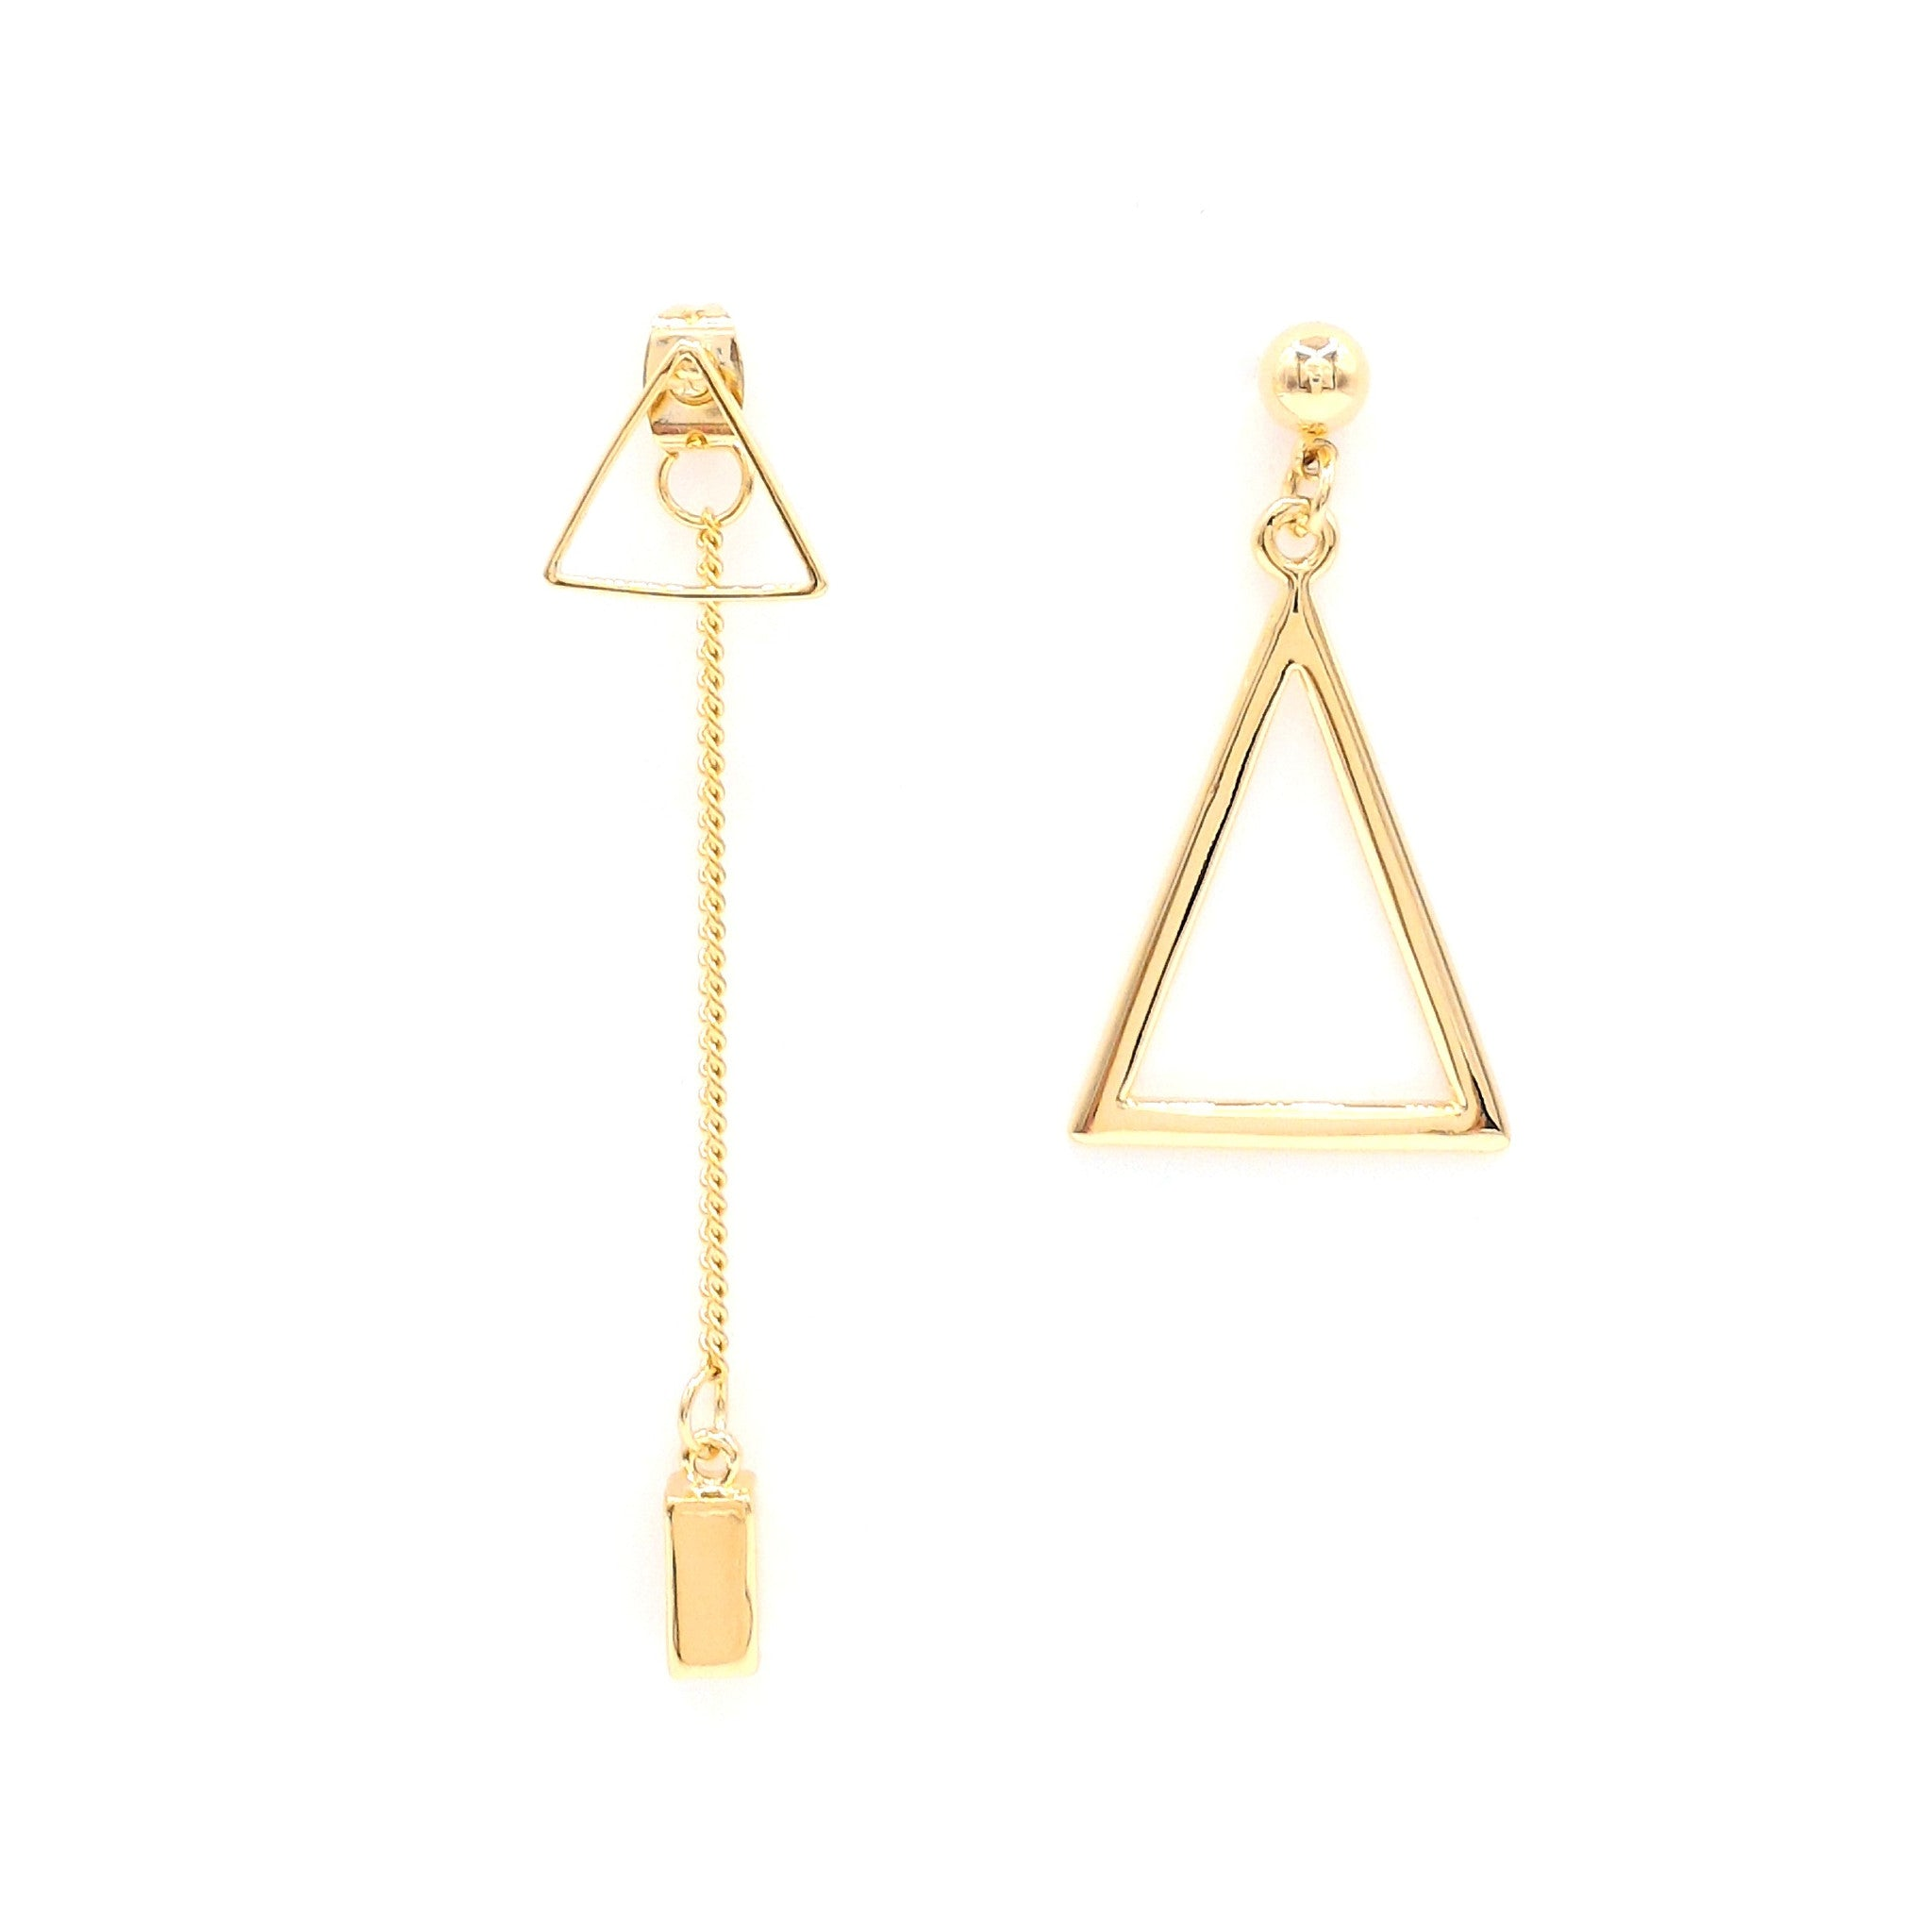 dior en jewellery earrings in gold z fashion couture asymmetric tribales womens finish gb